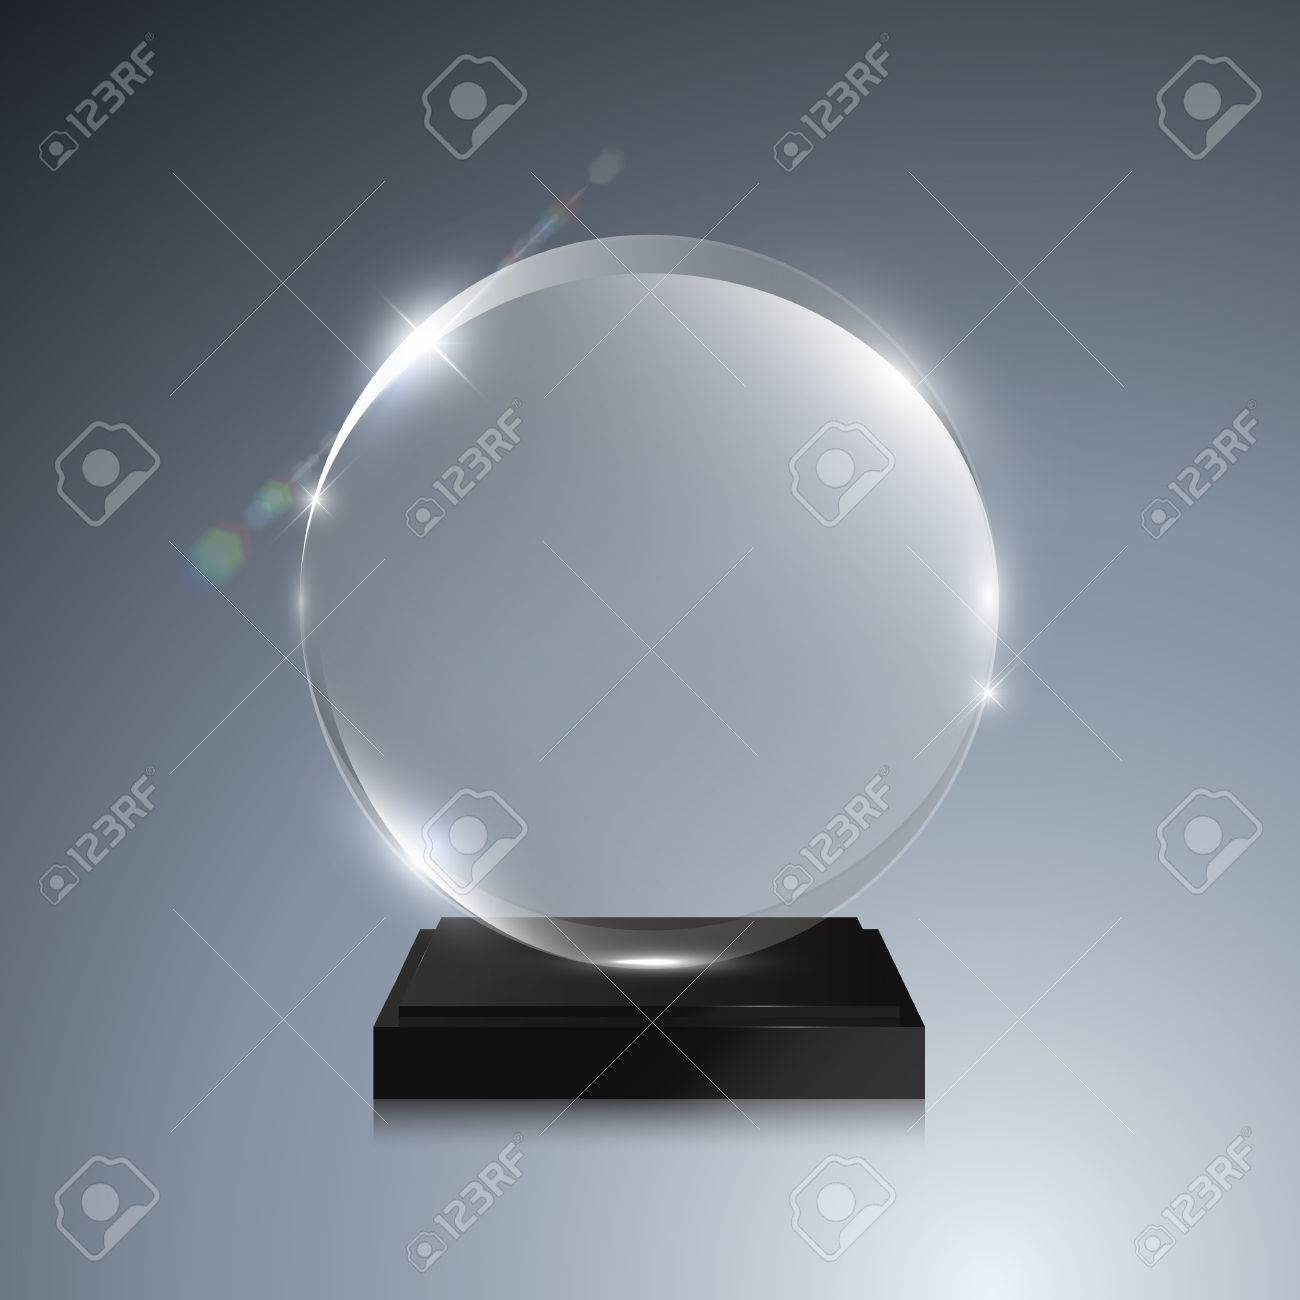 Glass Trophy Award Vector Crystal 3D Transparent Mockup With Pedestal On Gray Background